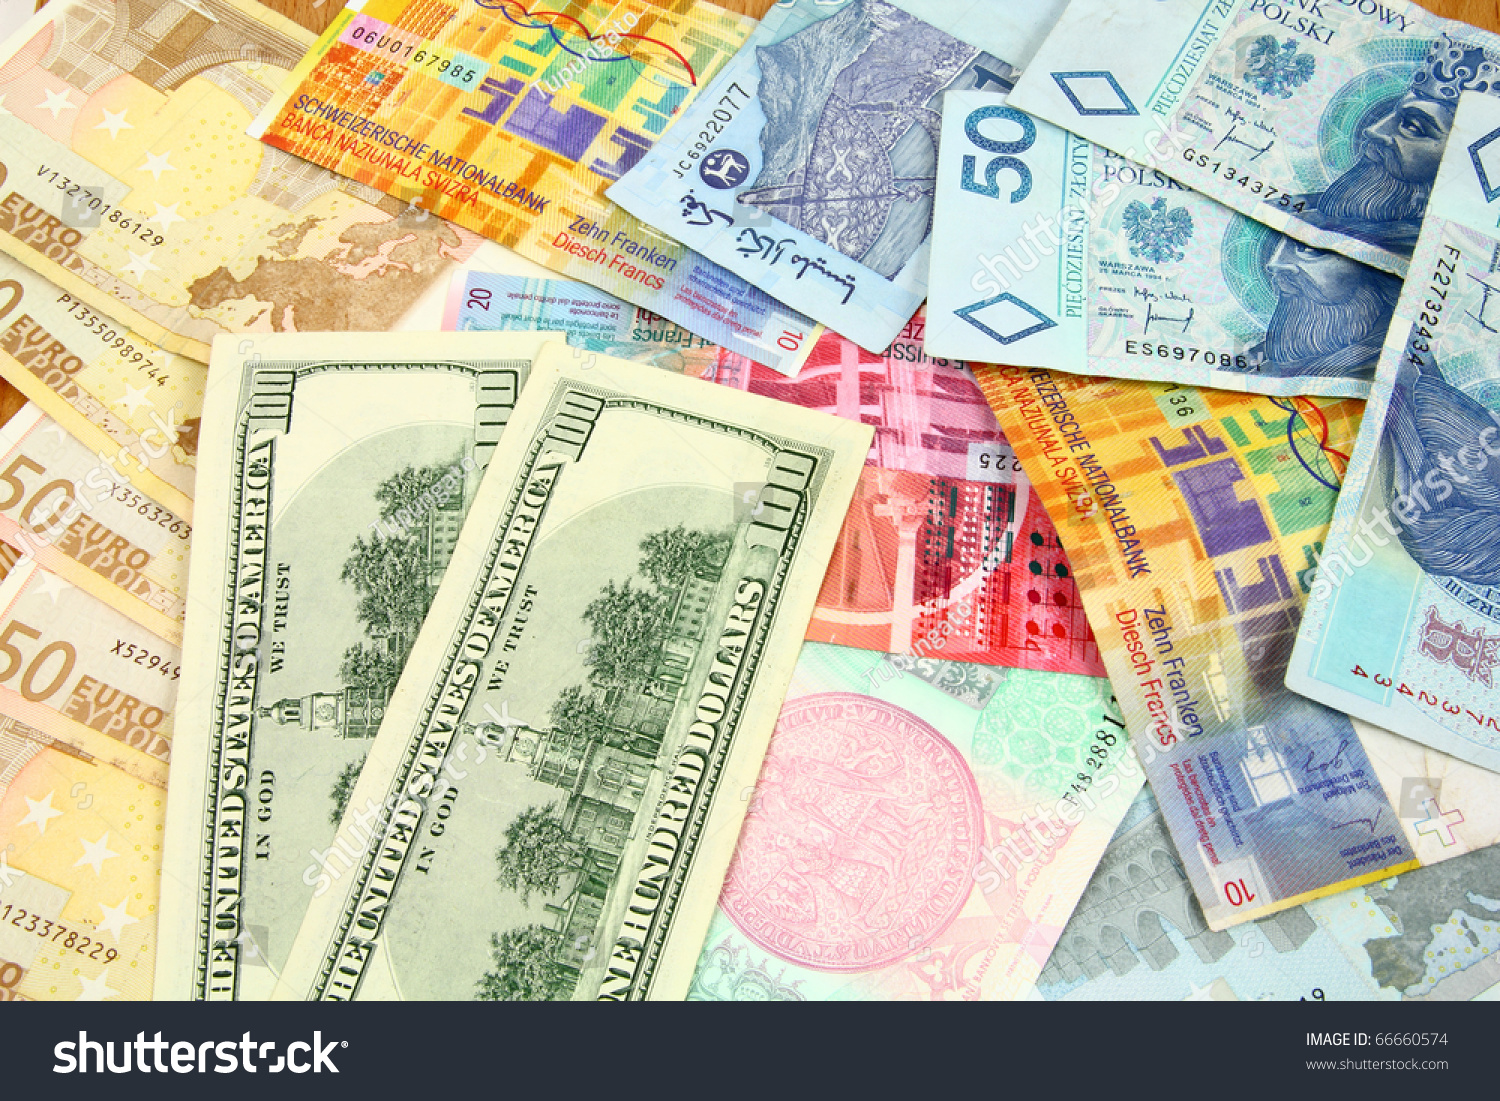 Forex market in malaysia